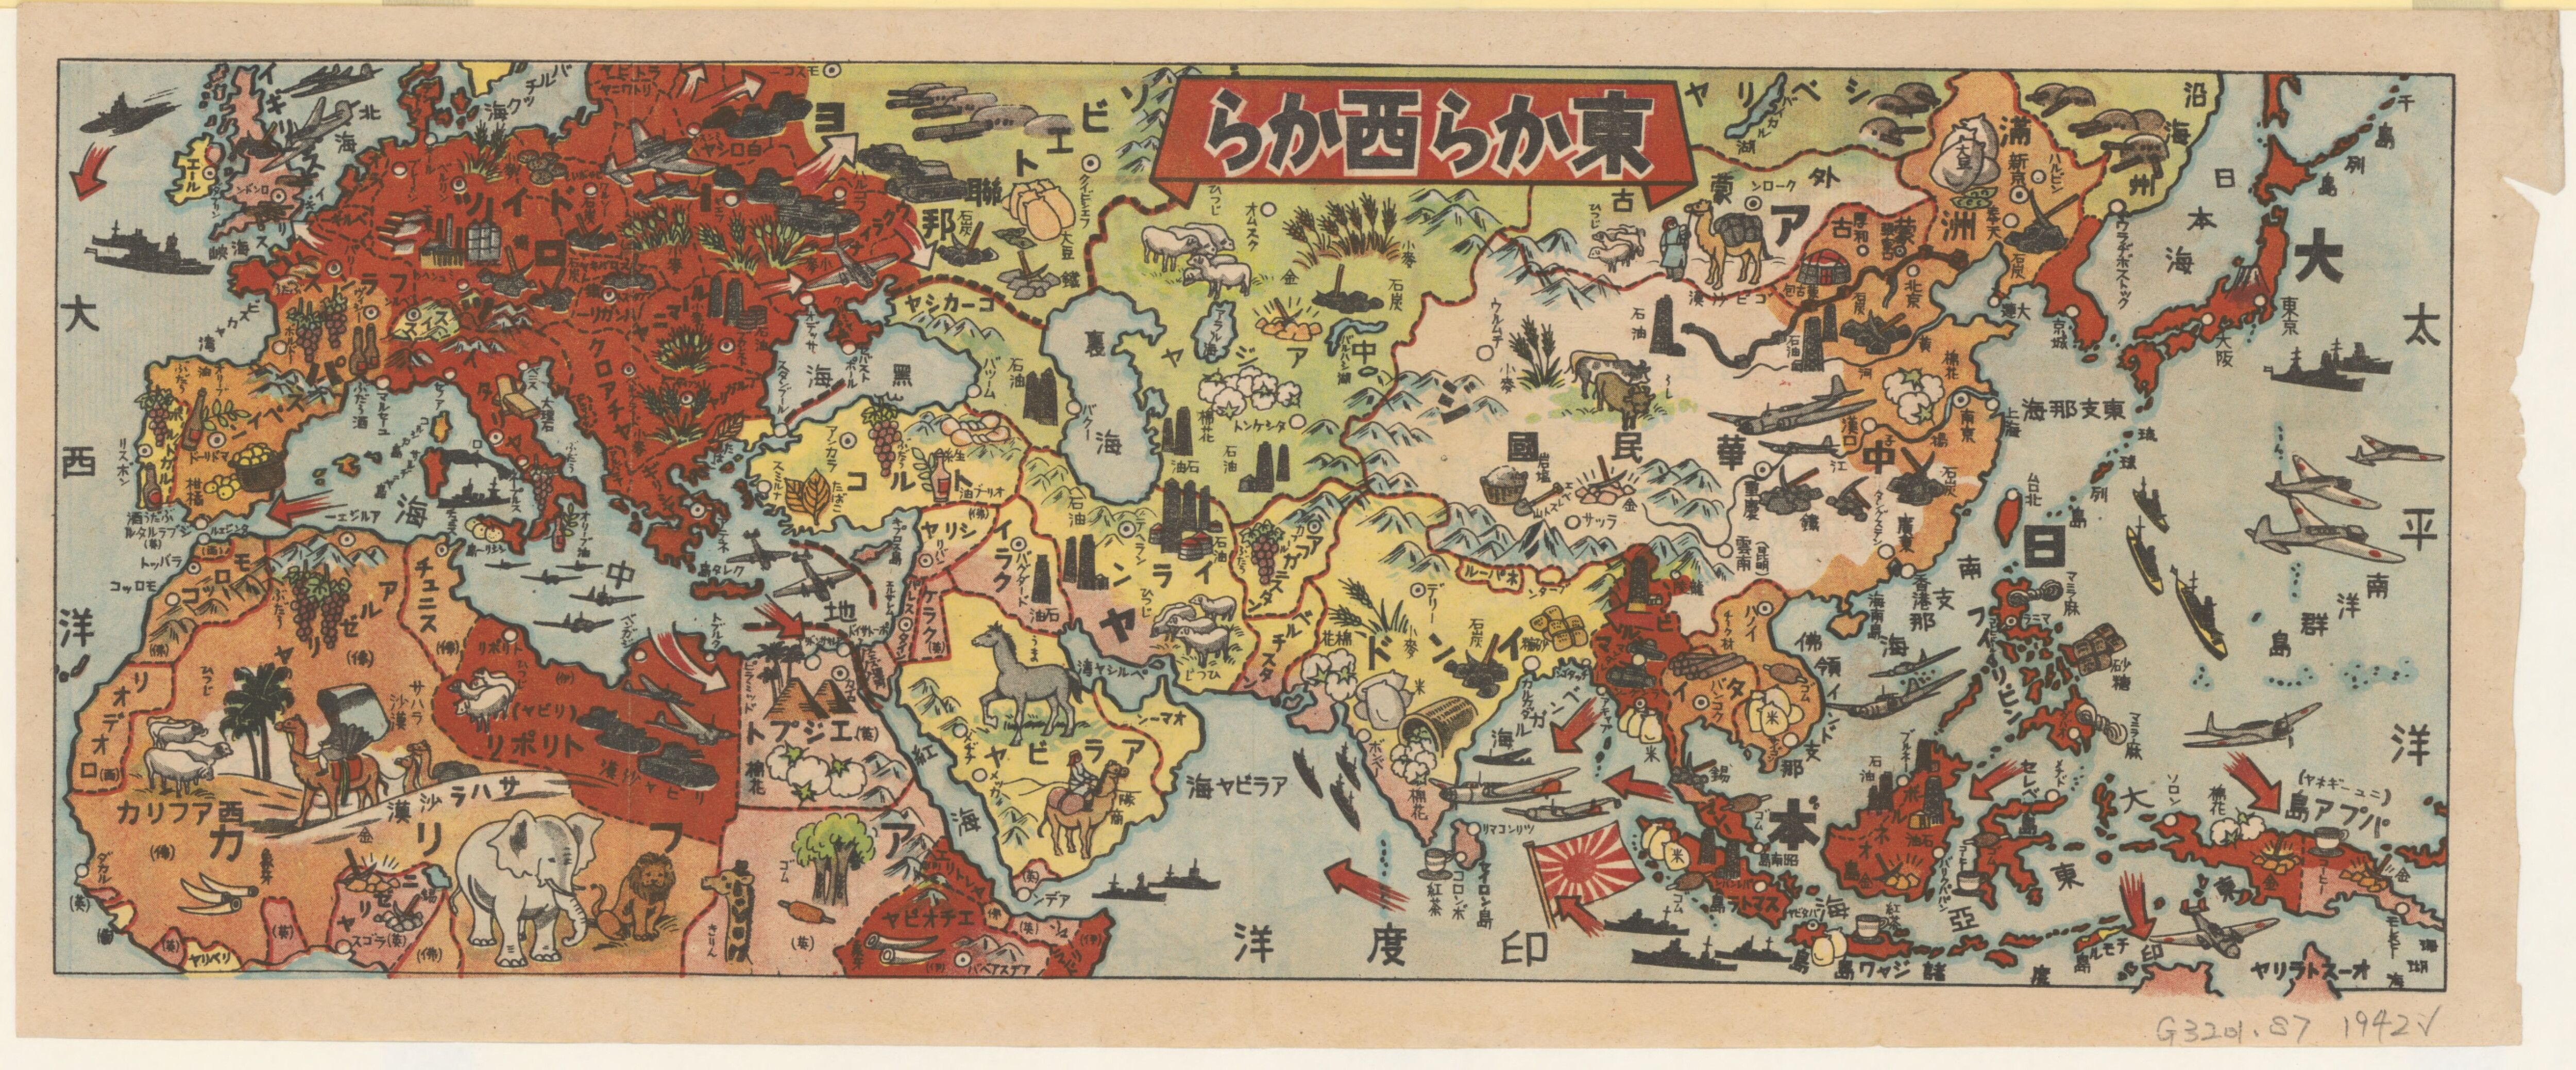 Japanese world war ii pictorial map of europe asia and northern japanese world war ii pictorial map of europe asia and northern africa 1942 gumiabroncs Images